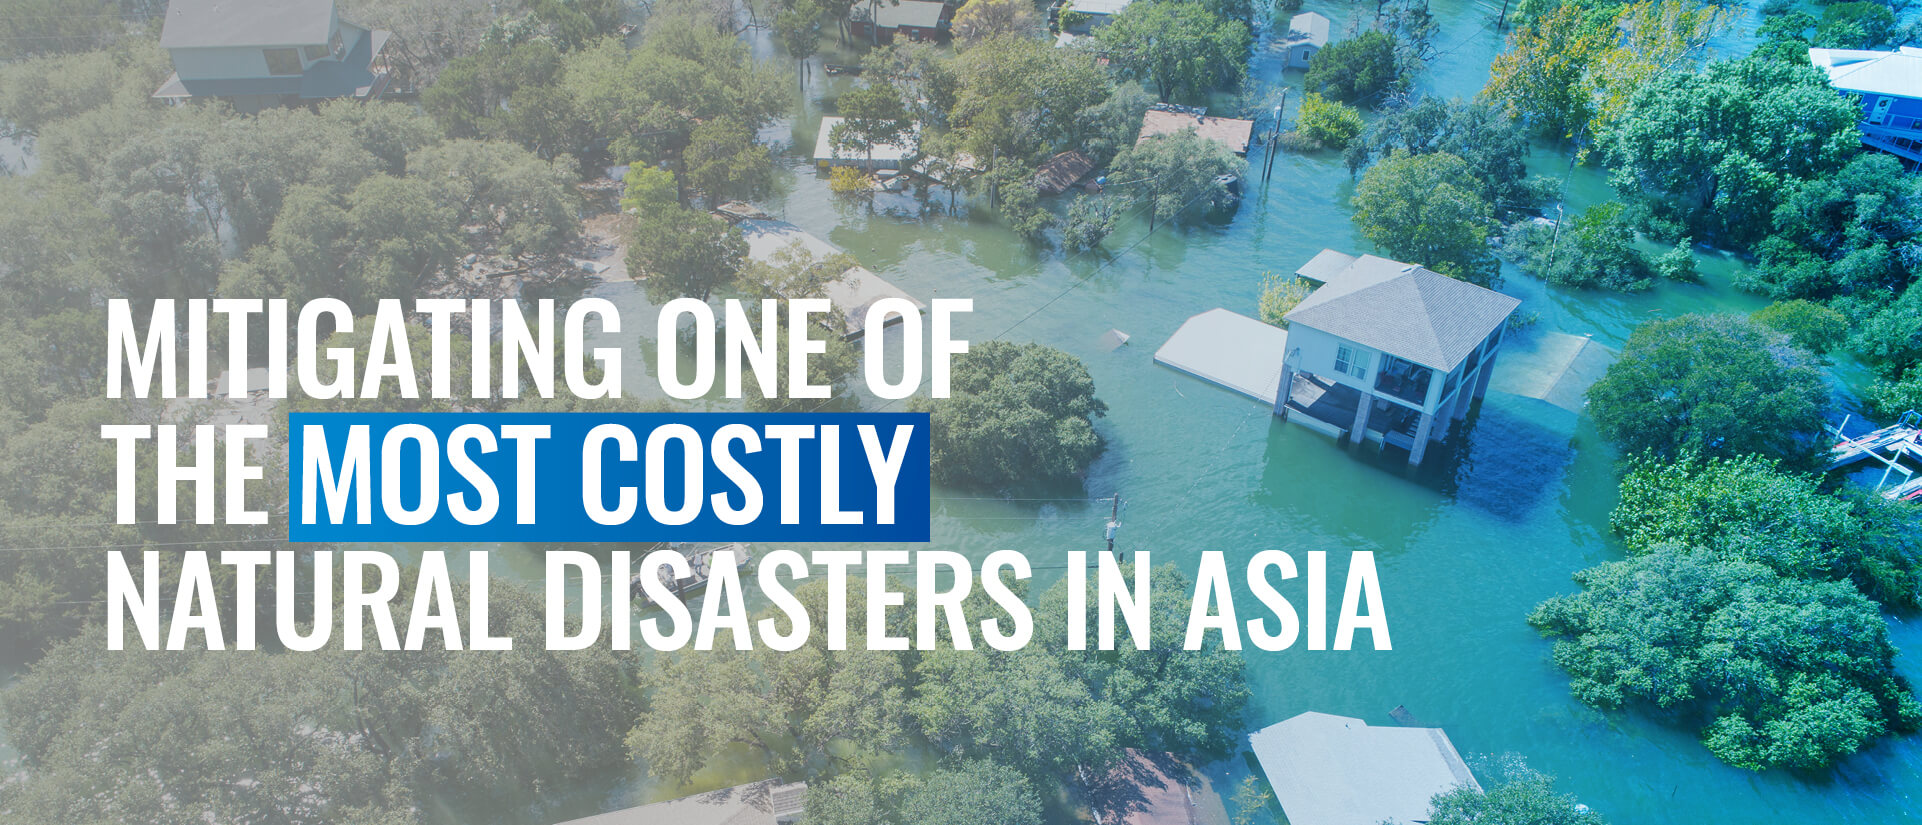 Mitigating one of the most costly natural disasters in the USA